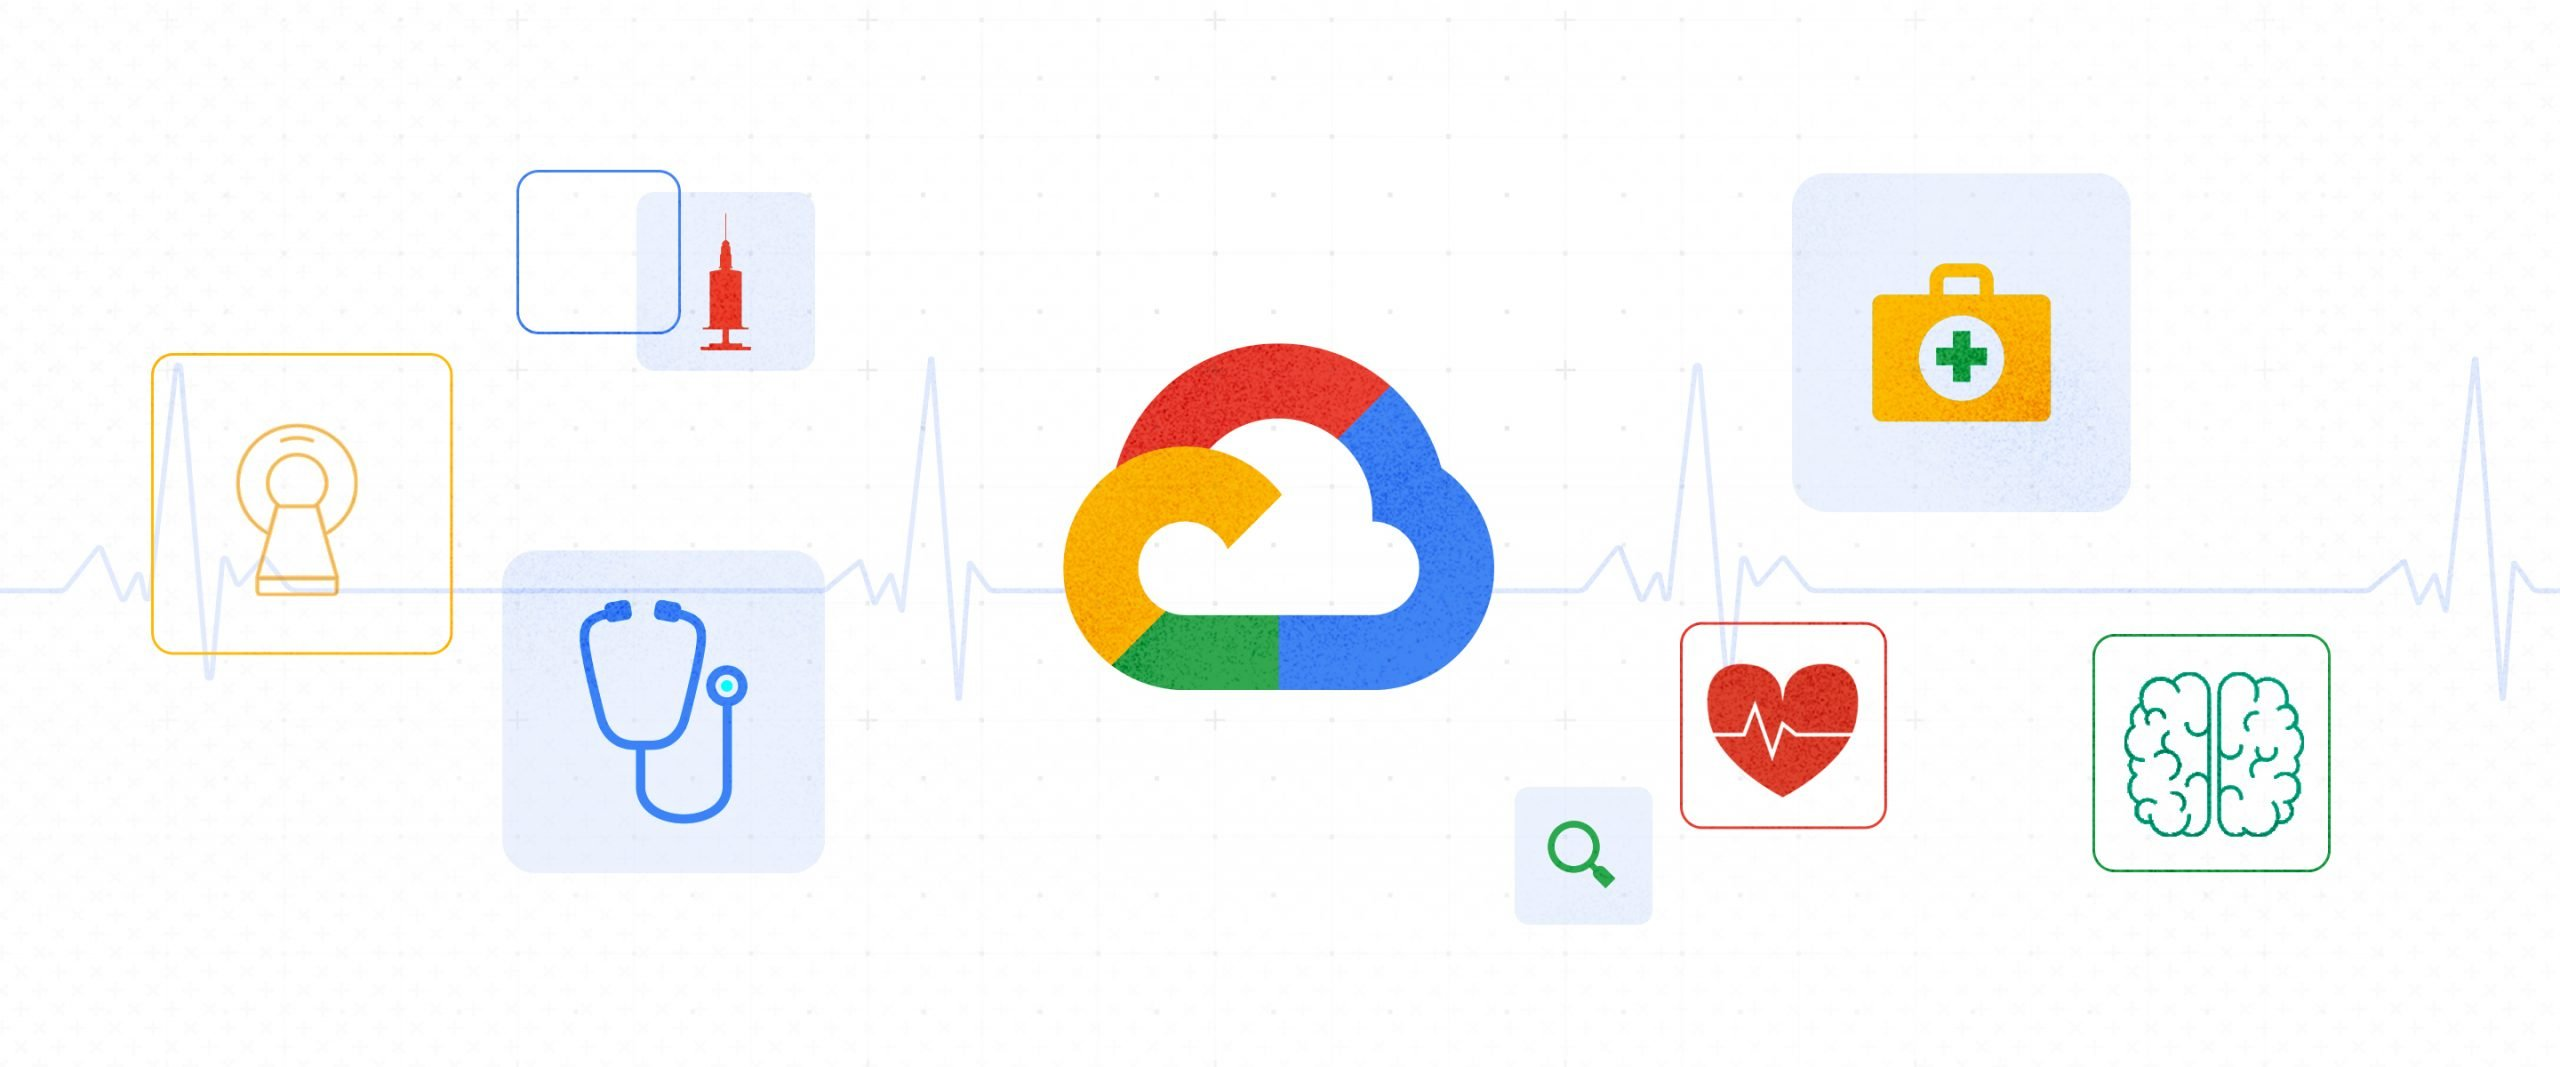 Dicom Systems Launches New Imaging Data Supply Chain Dedicated to Machine Learning, Collaborates with Google Cloud